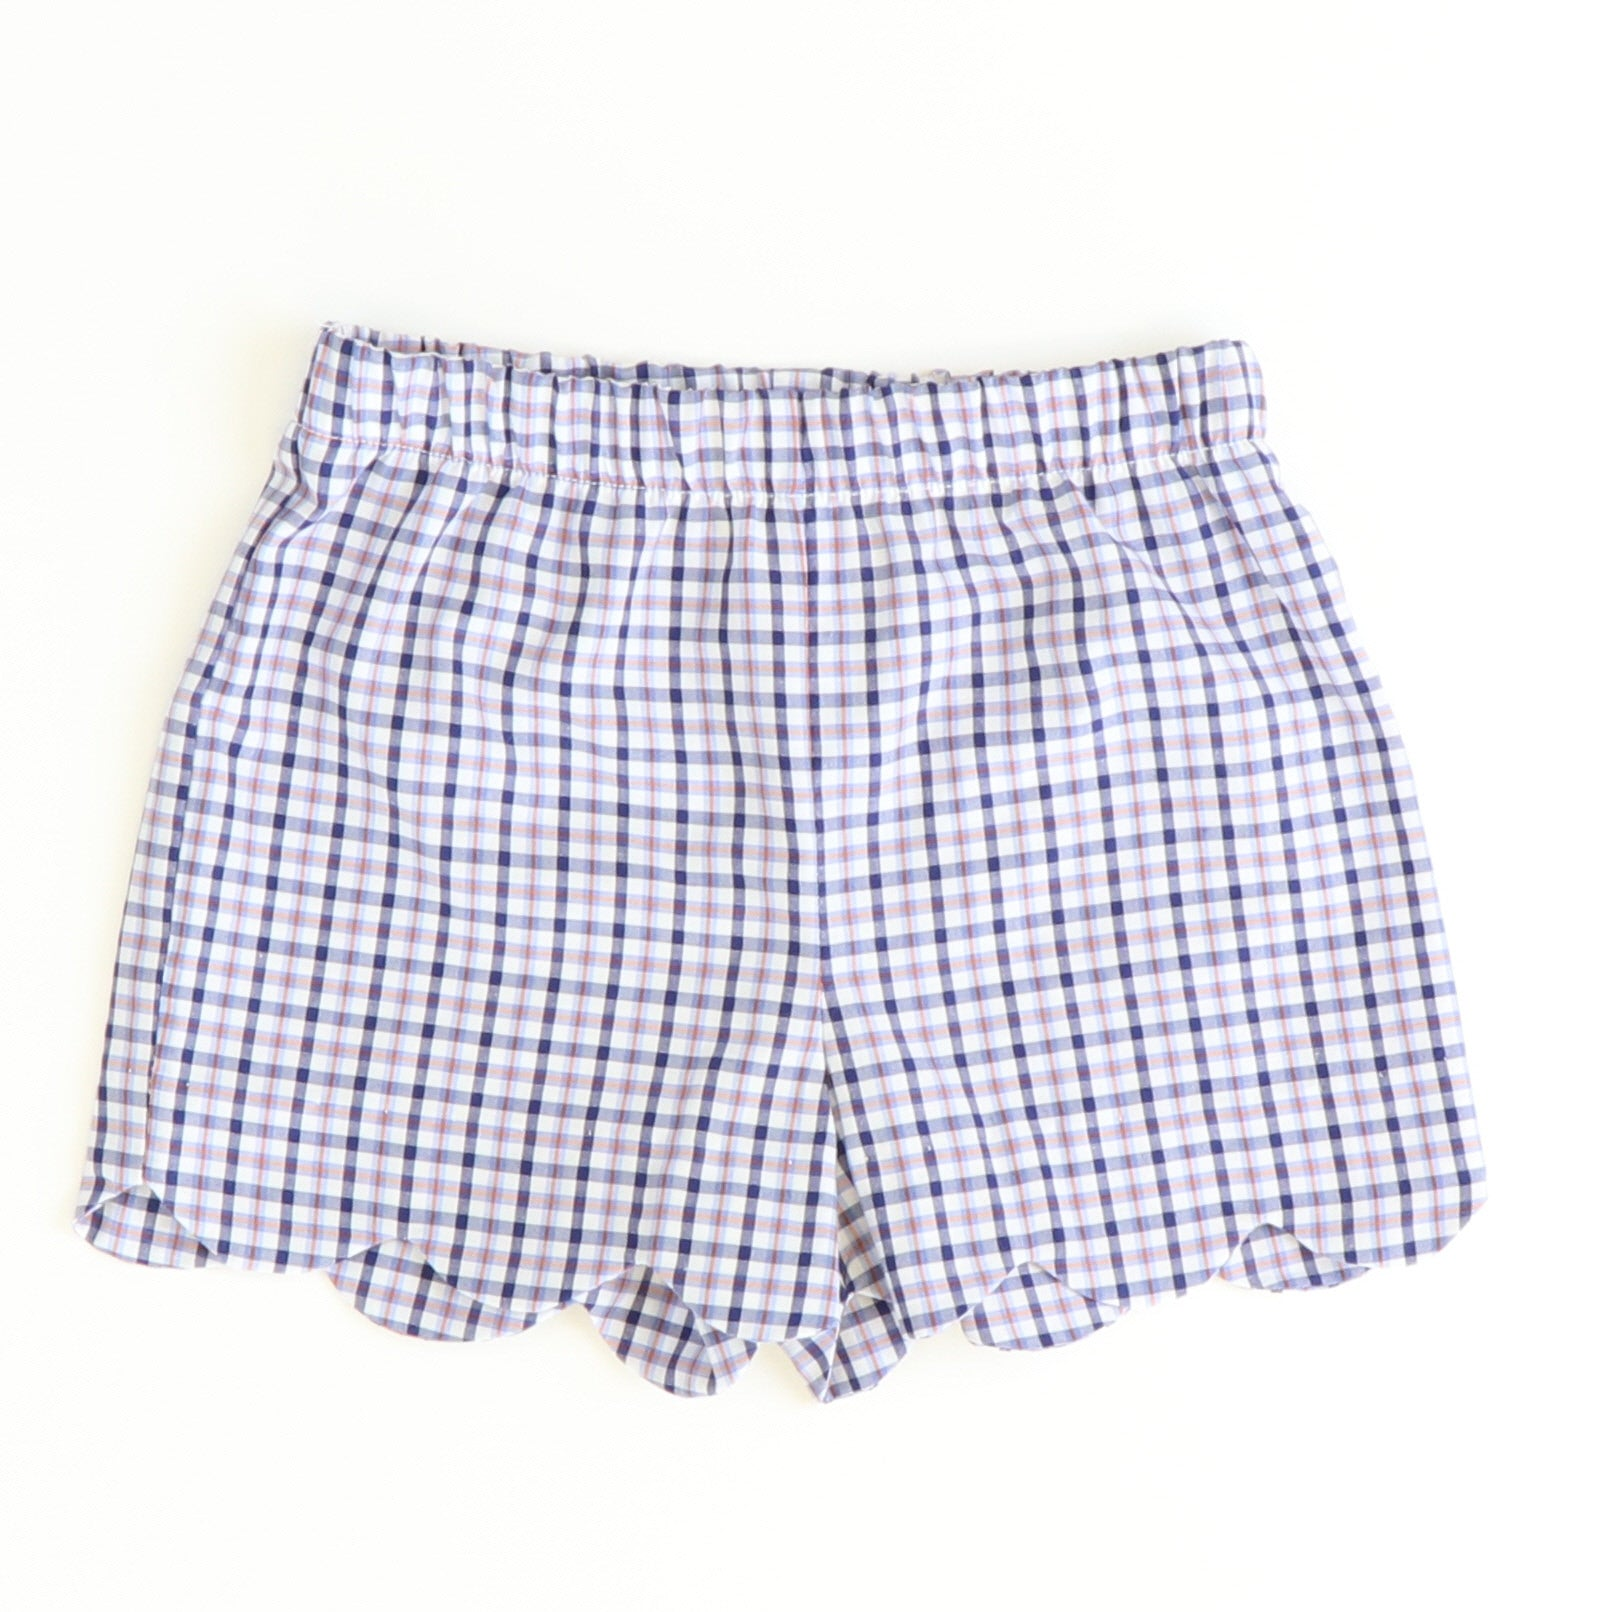 Scalloped Shorts - Blue & Orange Plaid